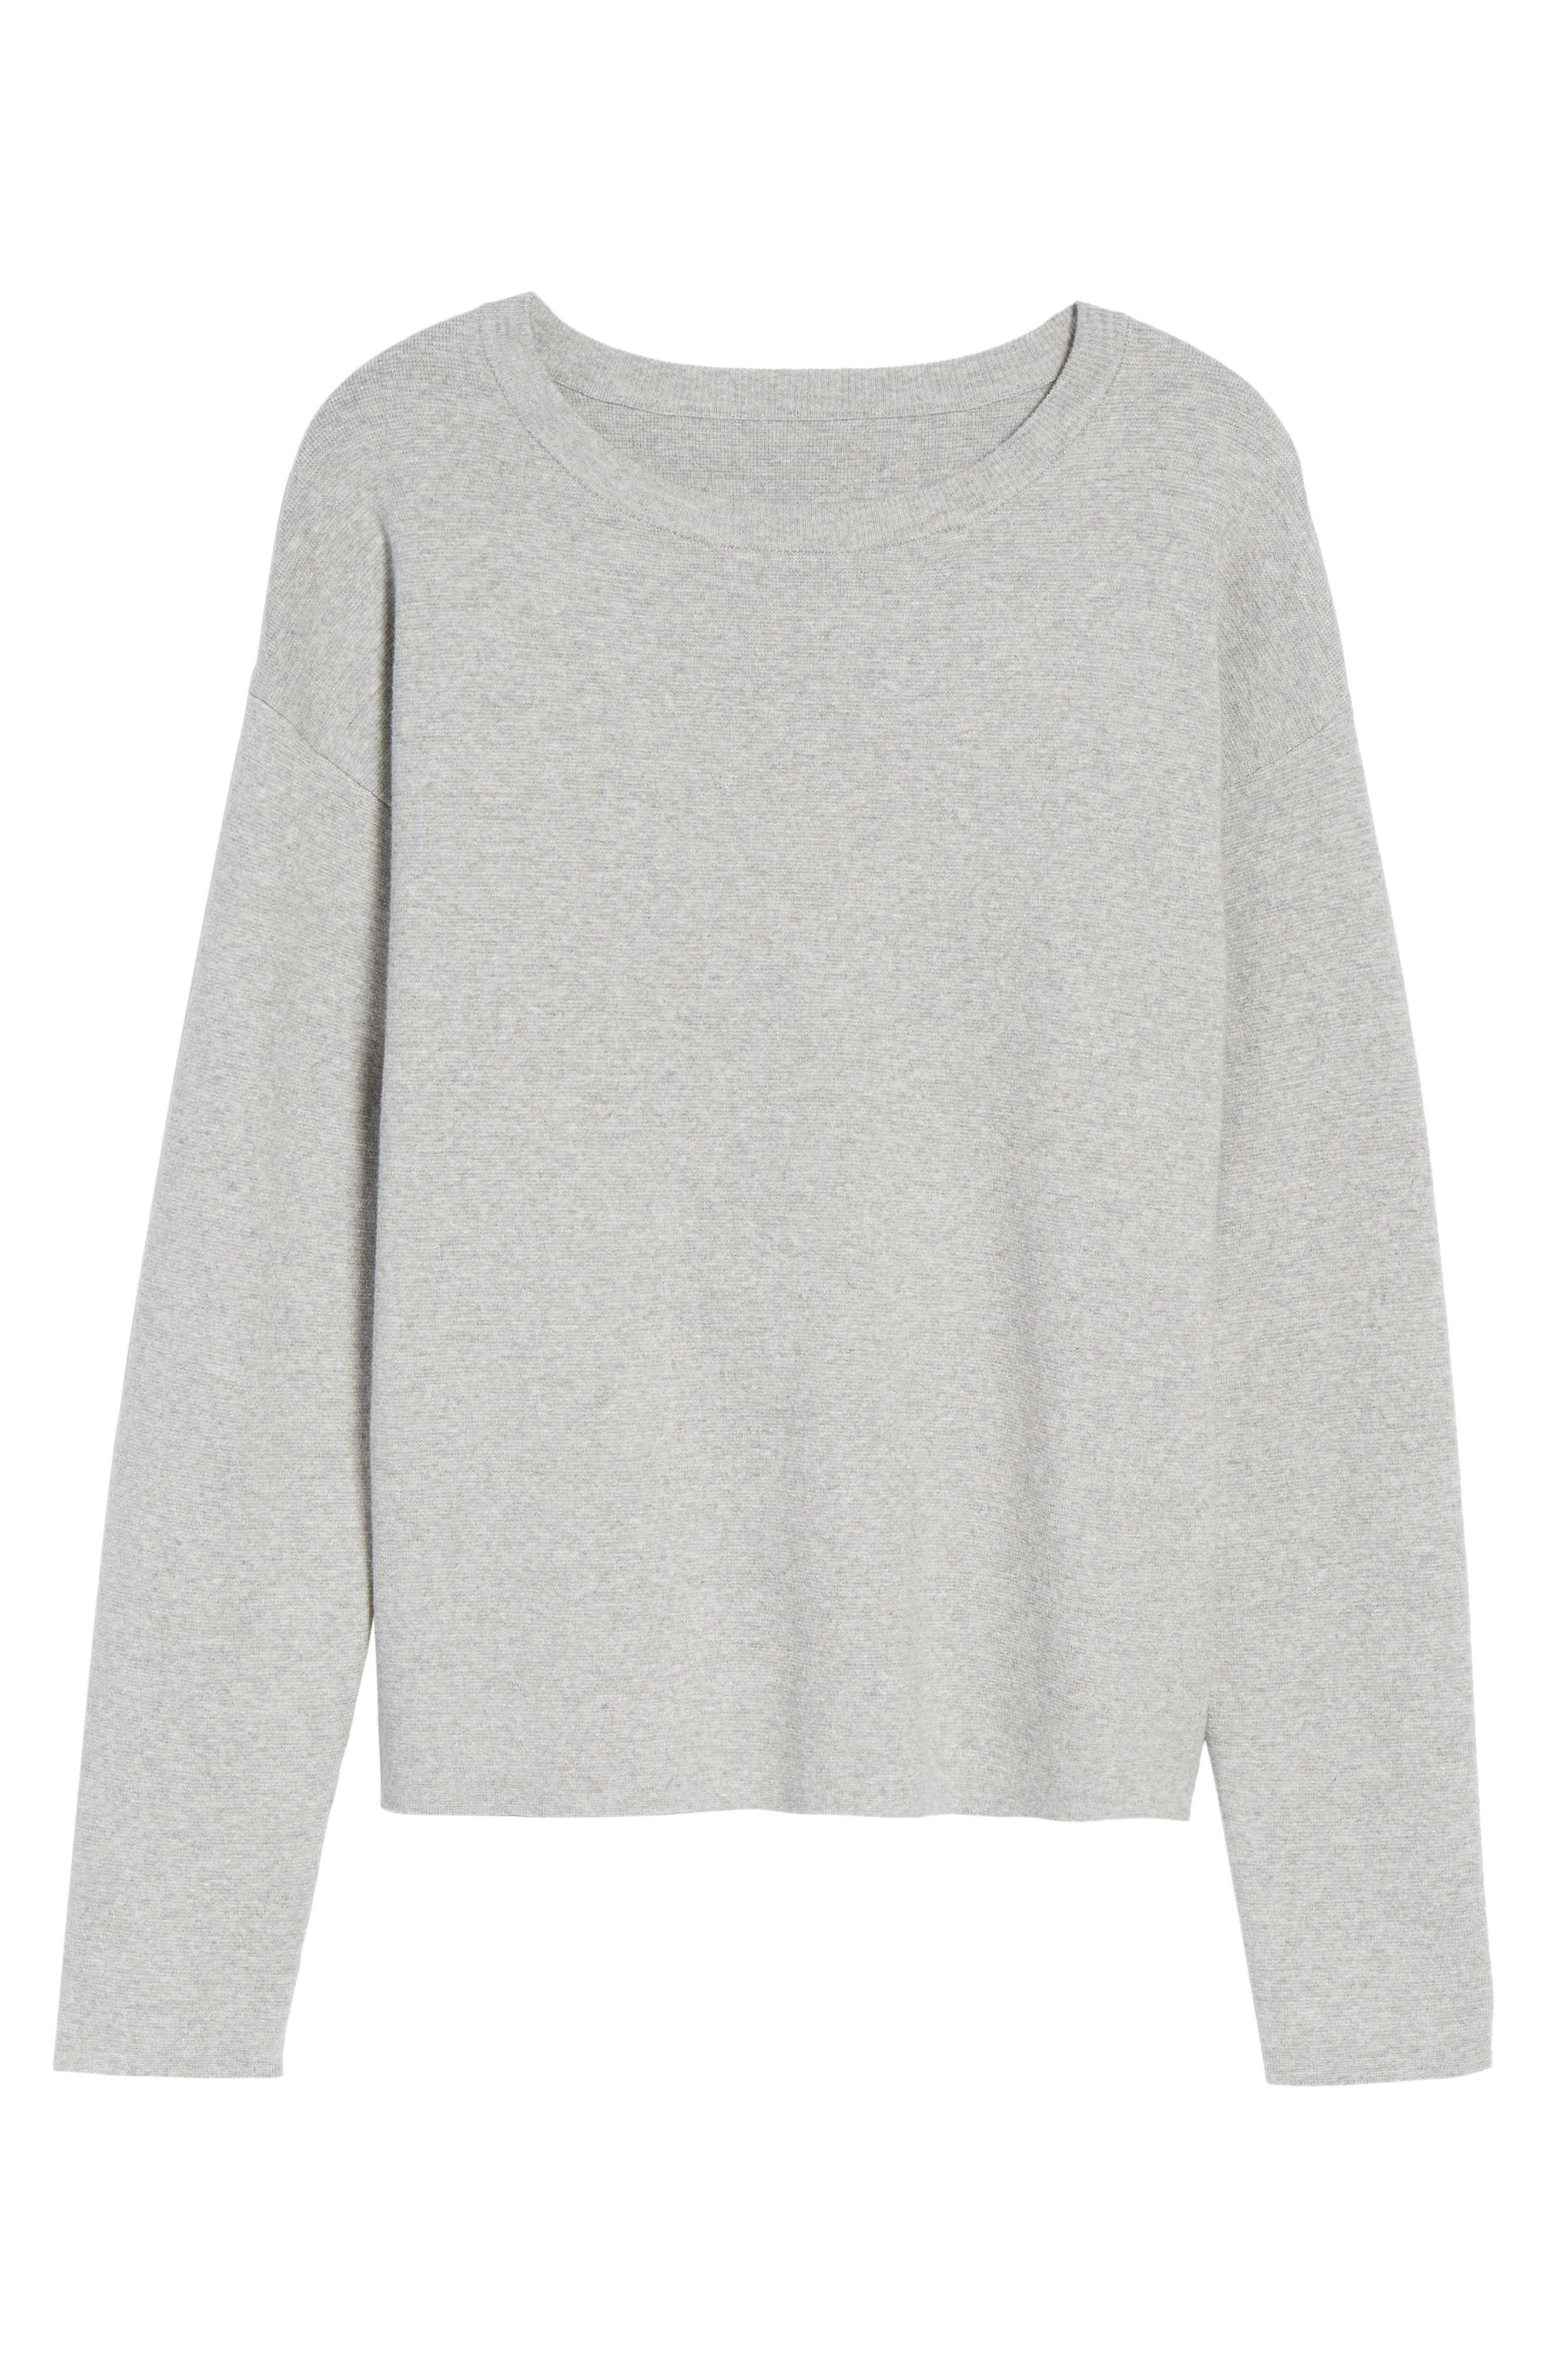 Tie Back Sweater,                             Alternate thumbnail 6, color,                             Heather Grey